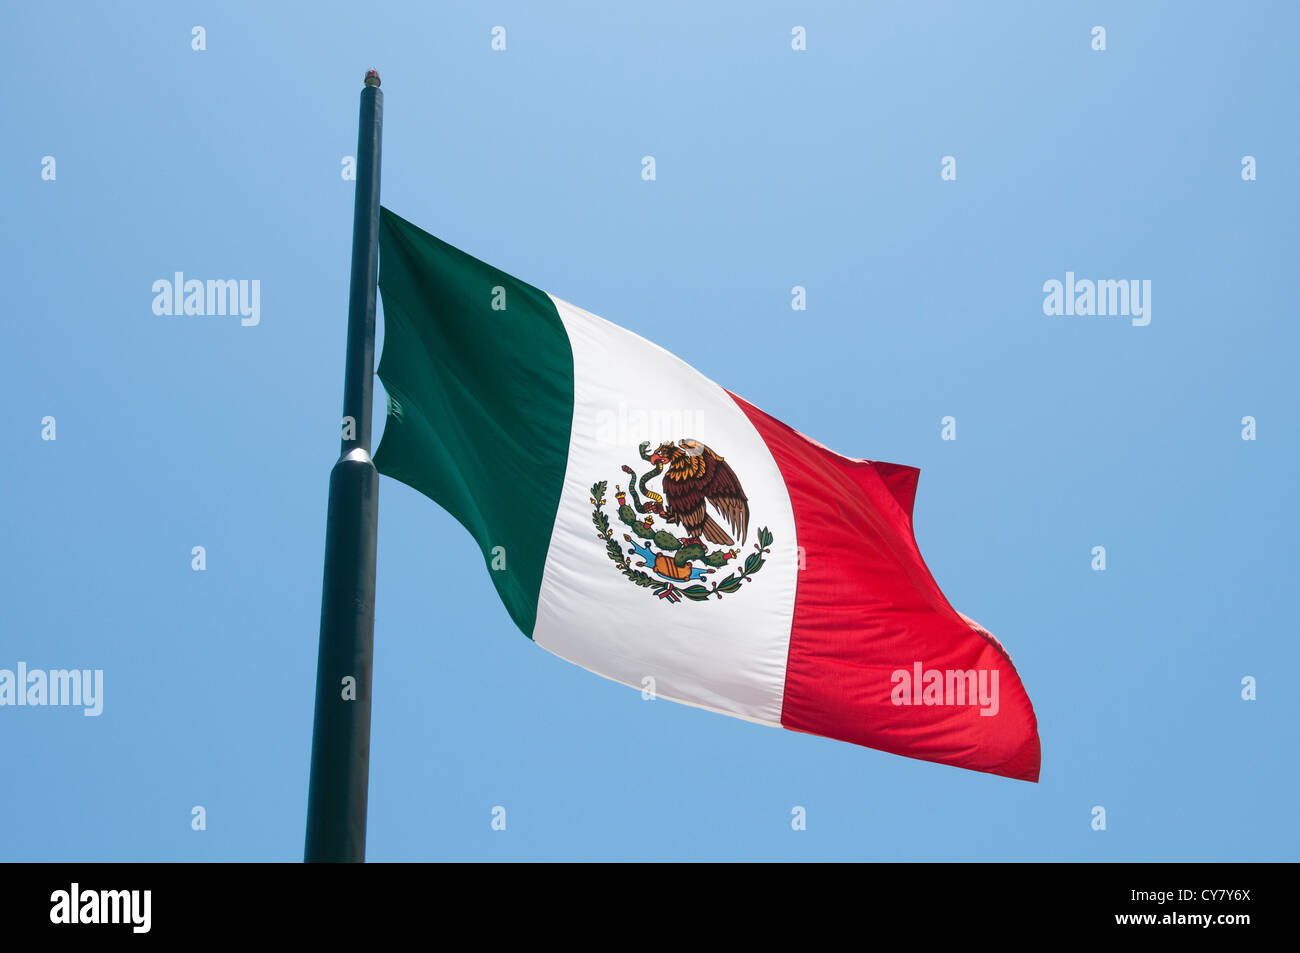 Official flag of the country of Mexico. Stock Photo